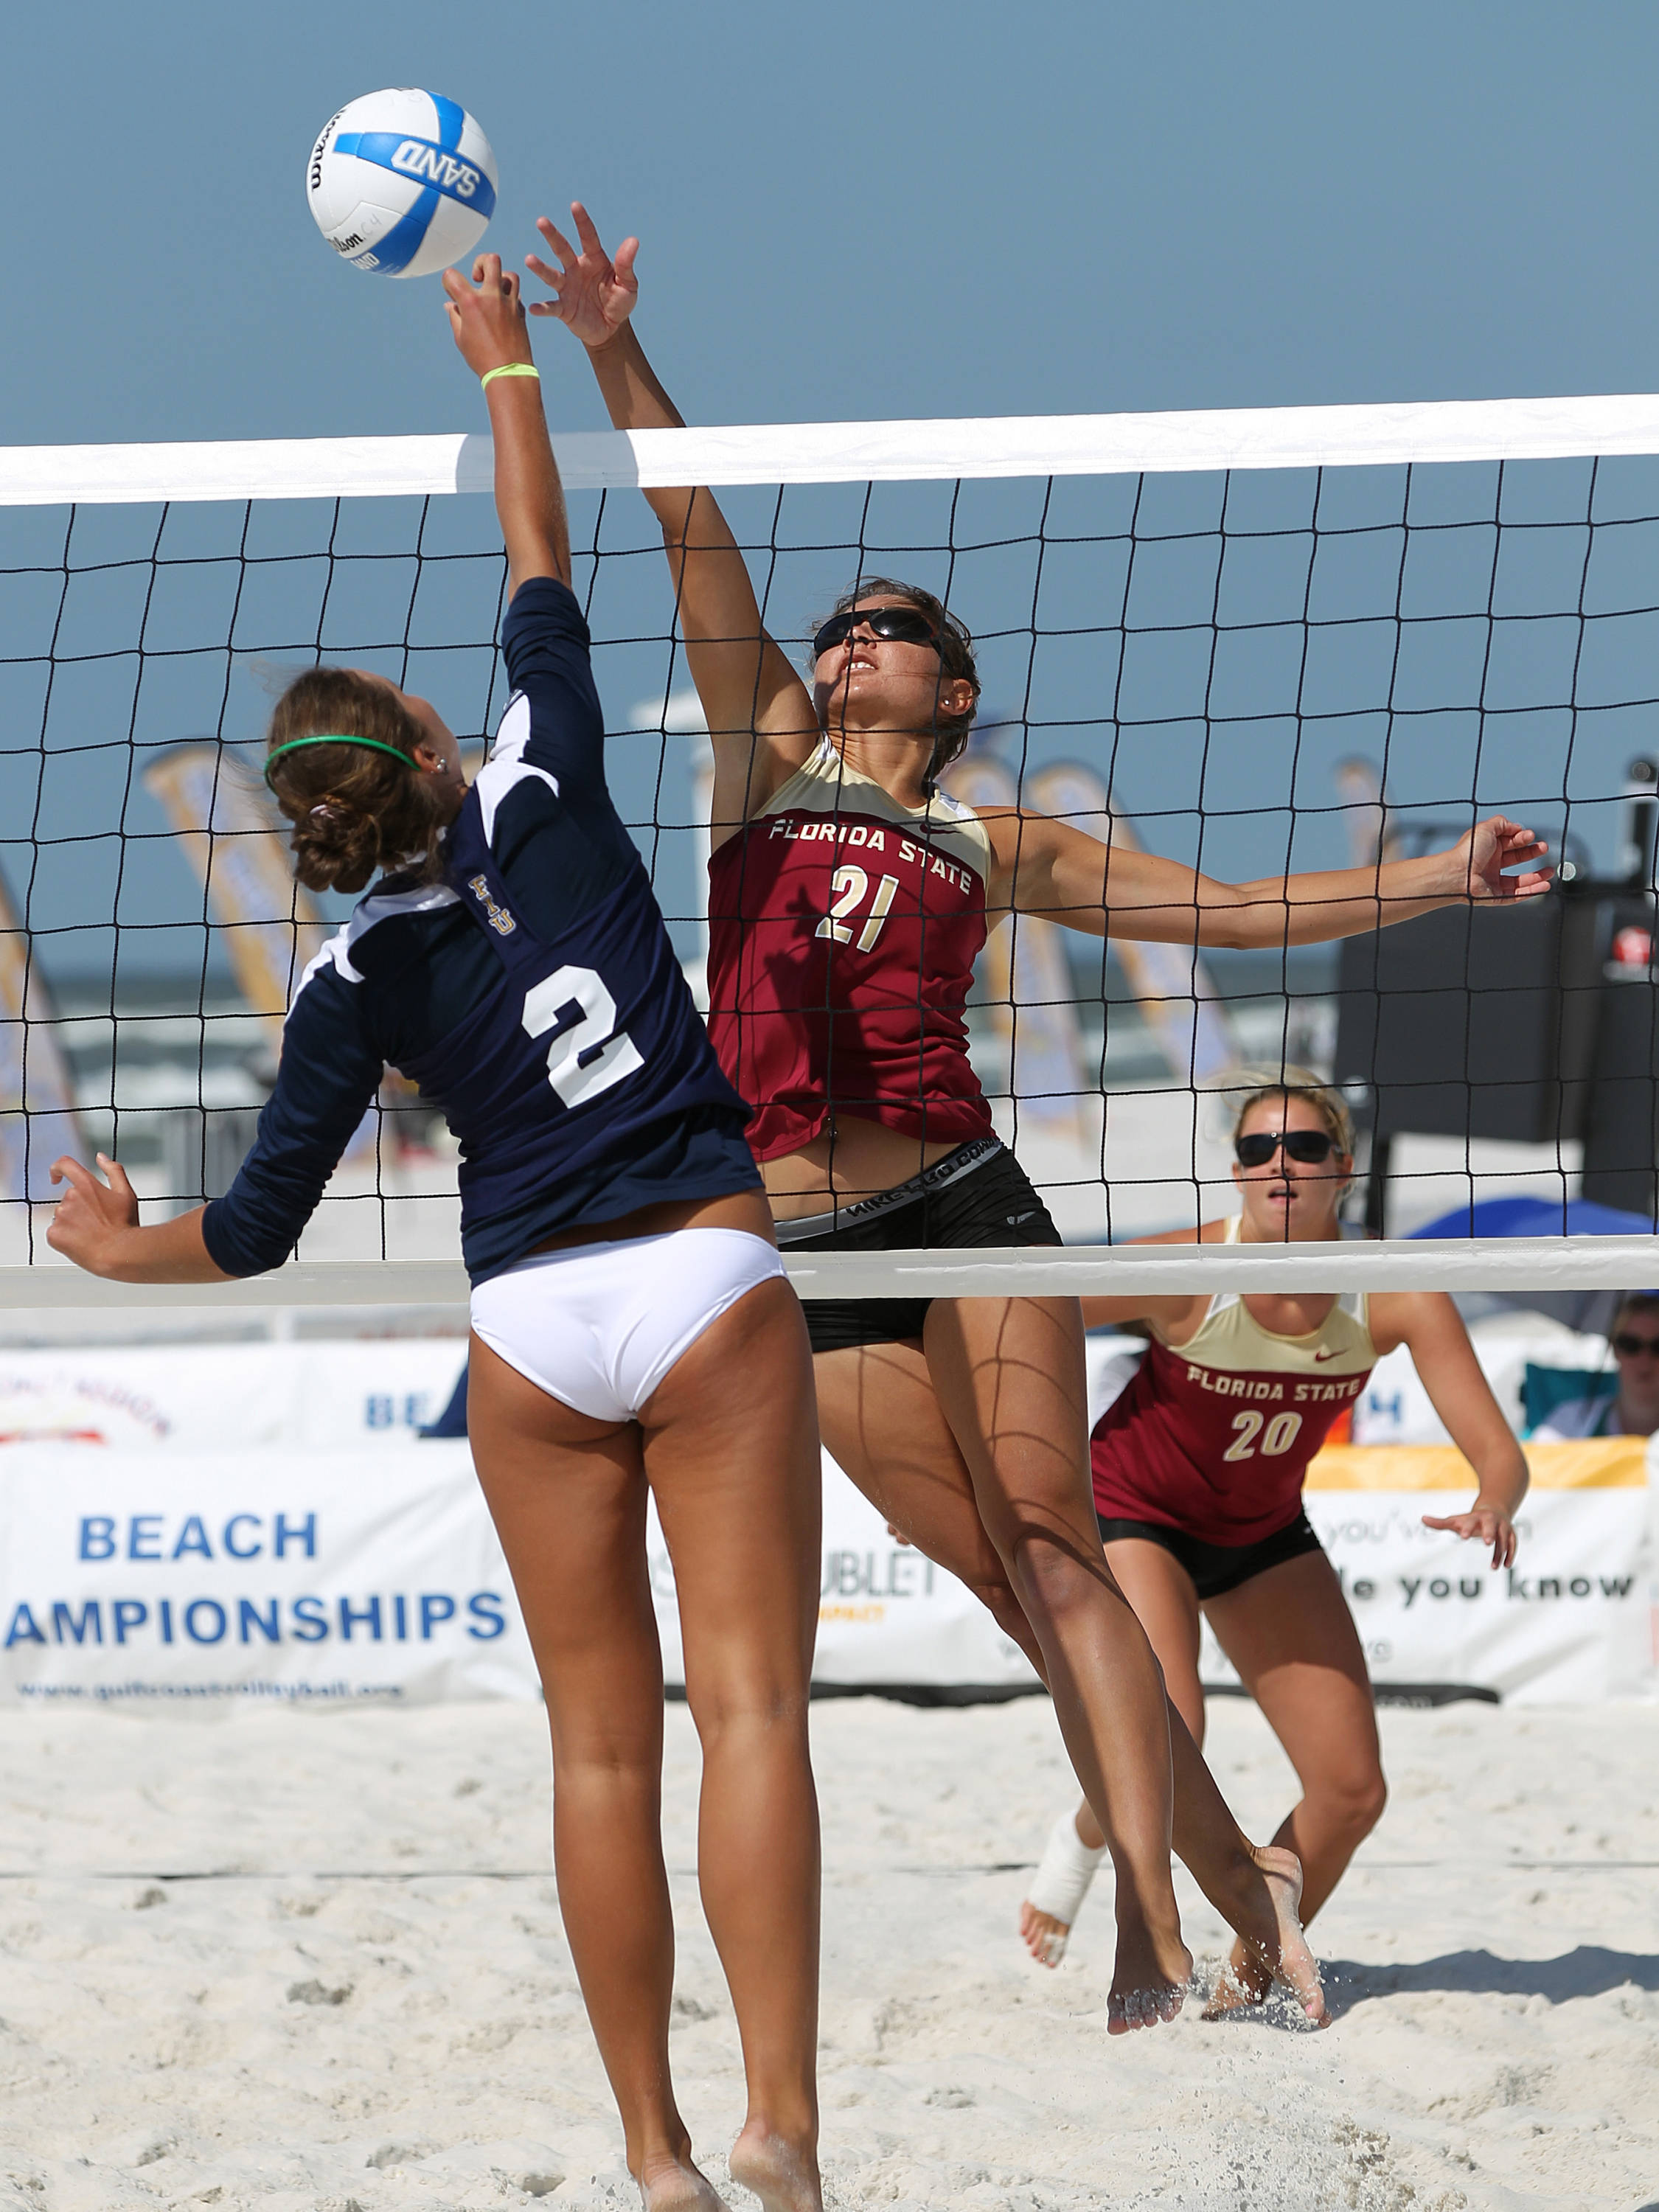 Jace Pardon (21) and Sarah Wickstrom (20), AVCA Collegiate Sand Volleyball National  Championships - Pairs,  Gulf Shores, Alabama, 05/05/13 . (Photo by Steve Musco)